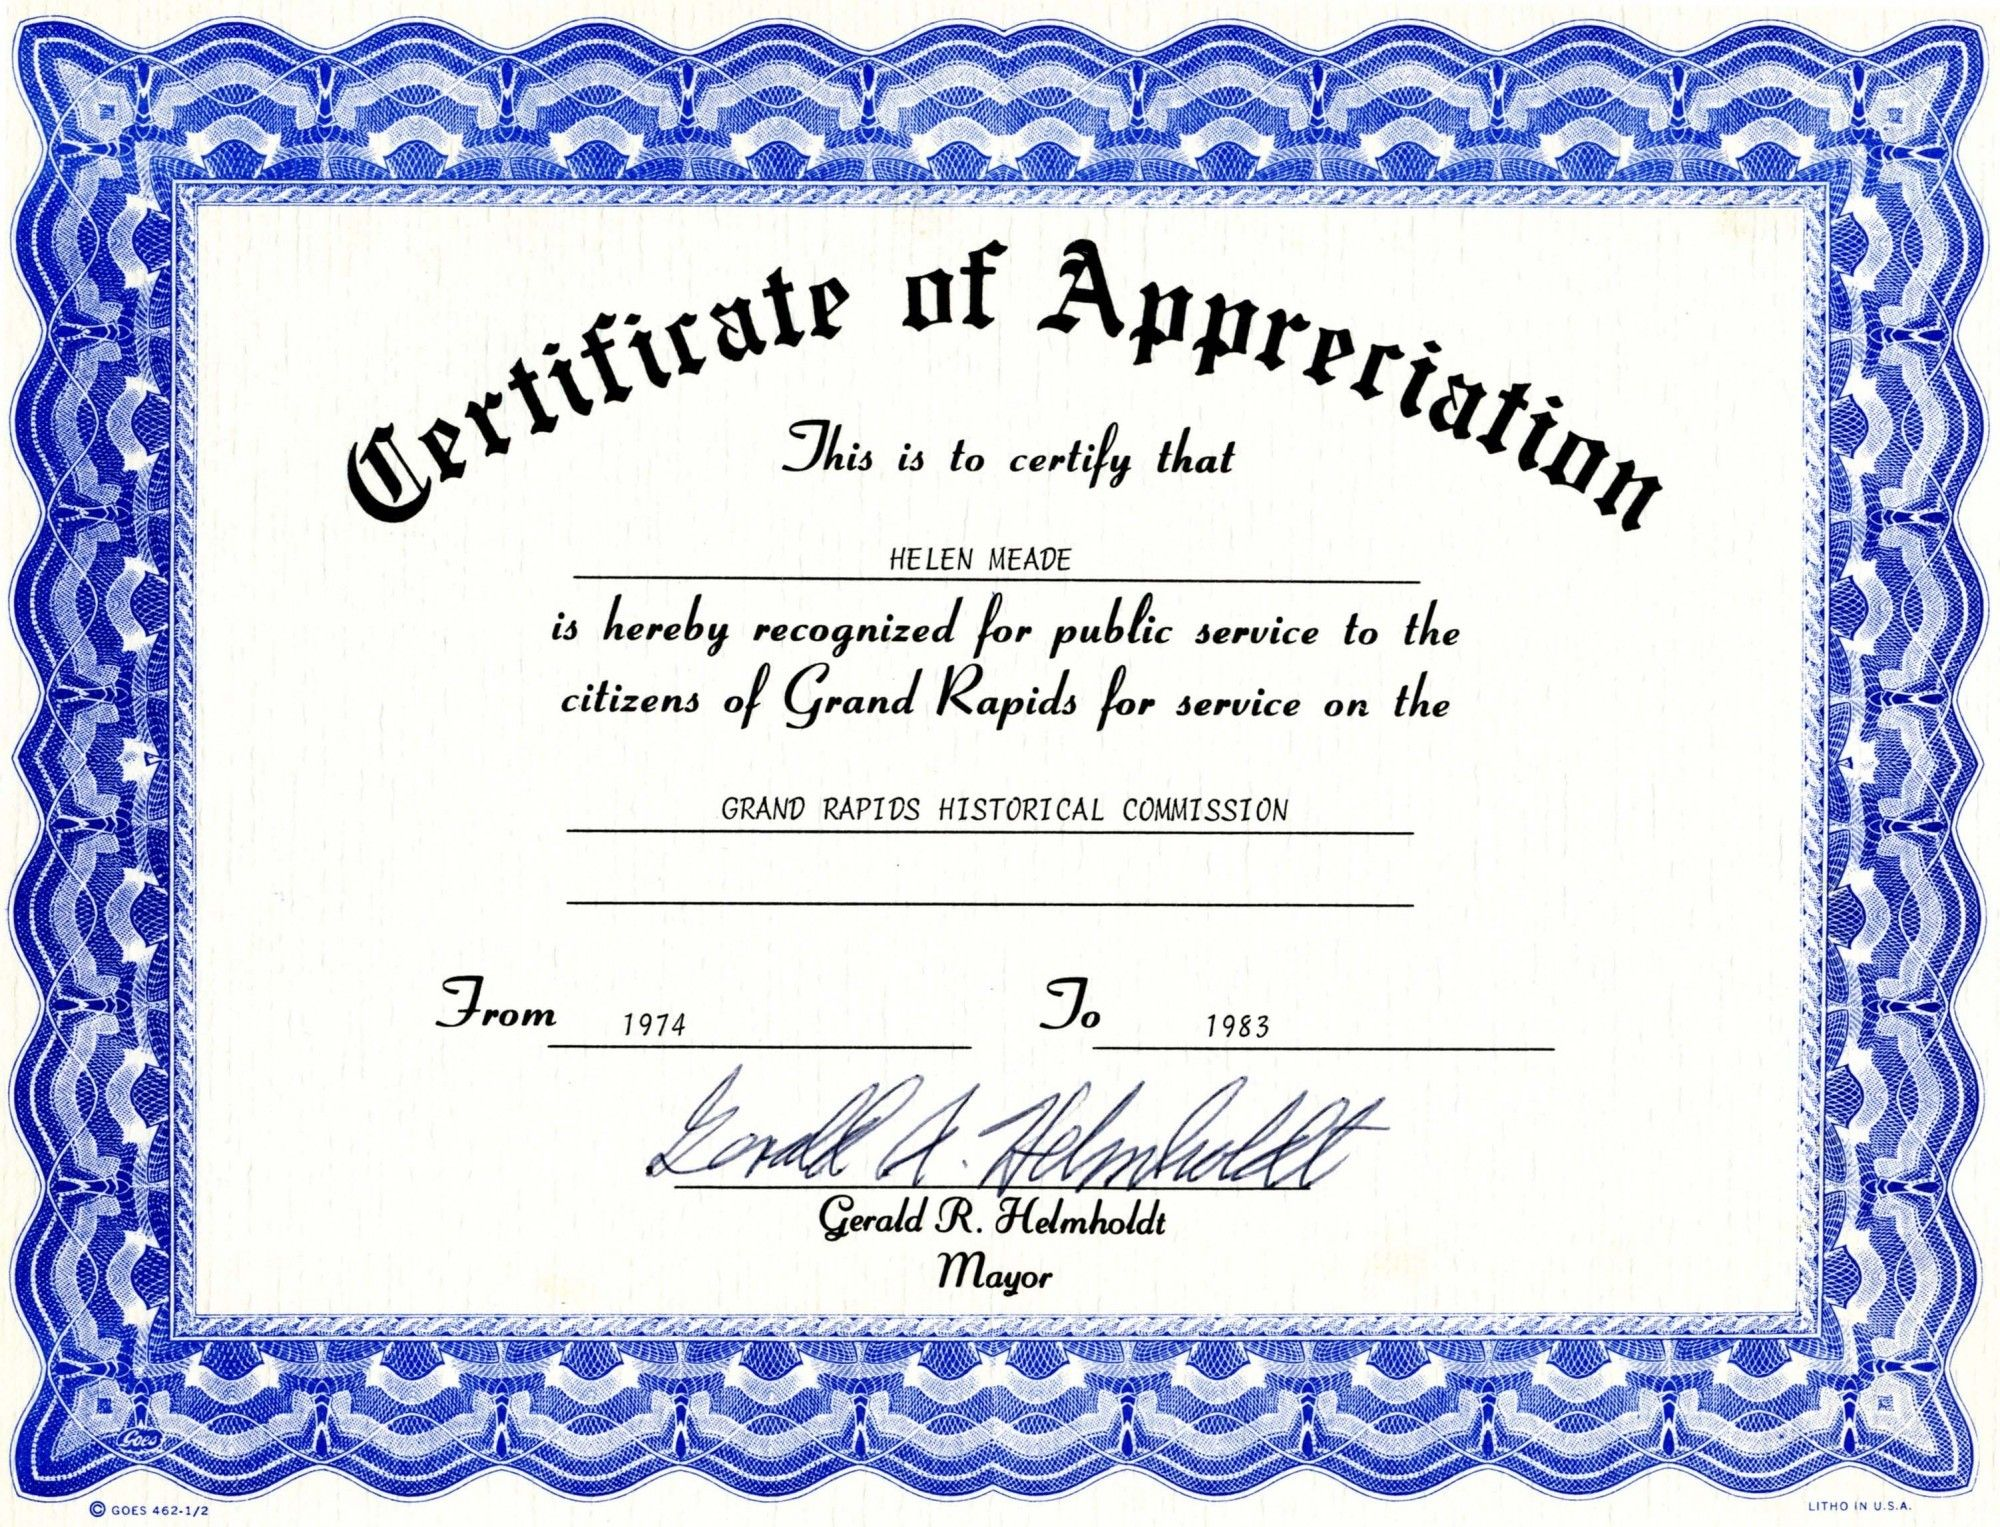 Appreciation certificate templates free download besttemplates123 appreciation certificate templates free download besttemplates123 yelopaper Image collections